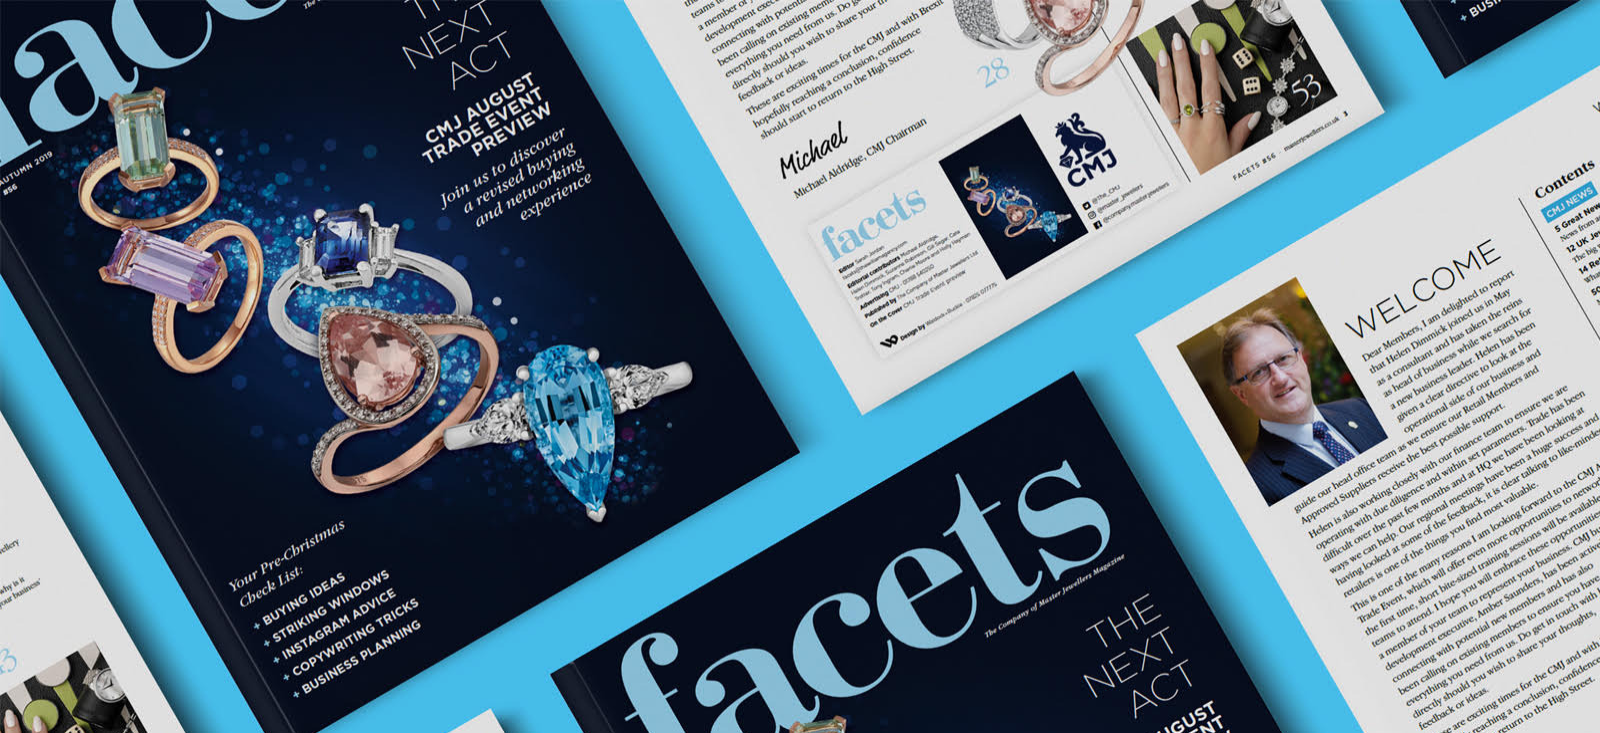 Company of Master Jewellers Facets Magazine - The William Agency Portfolio - Feature Writing and Contract Publishing